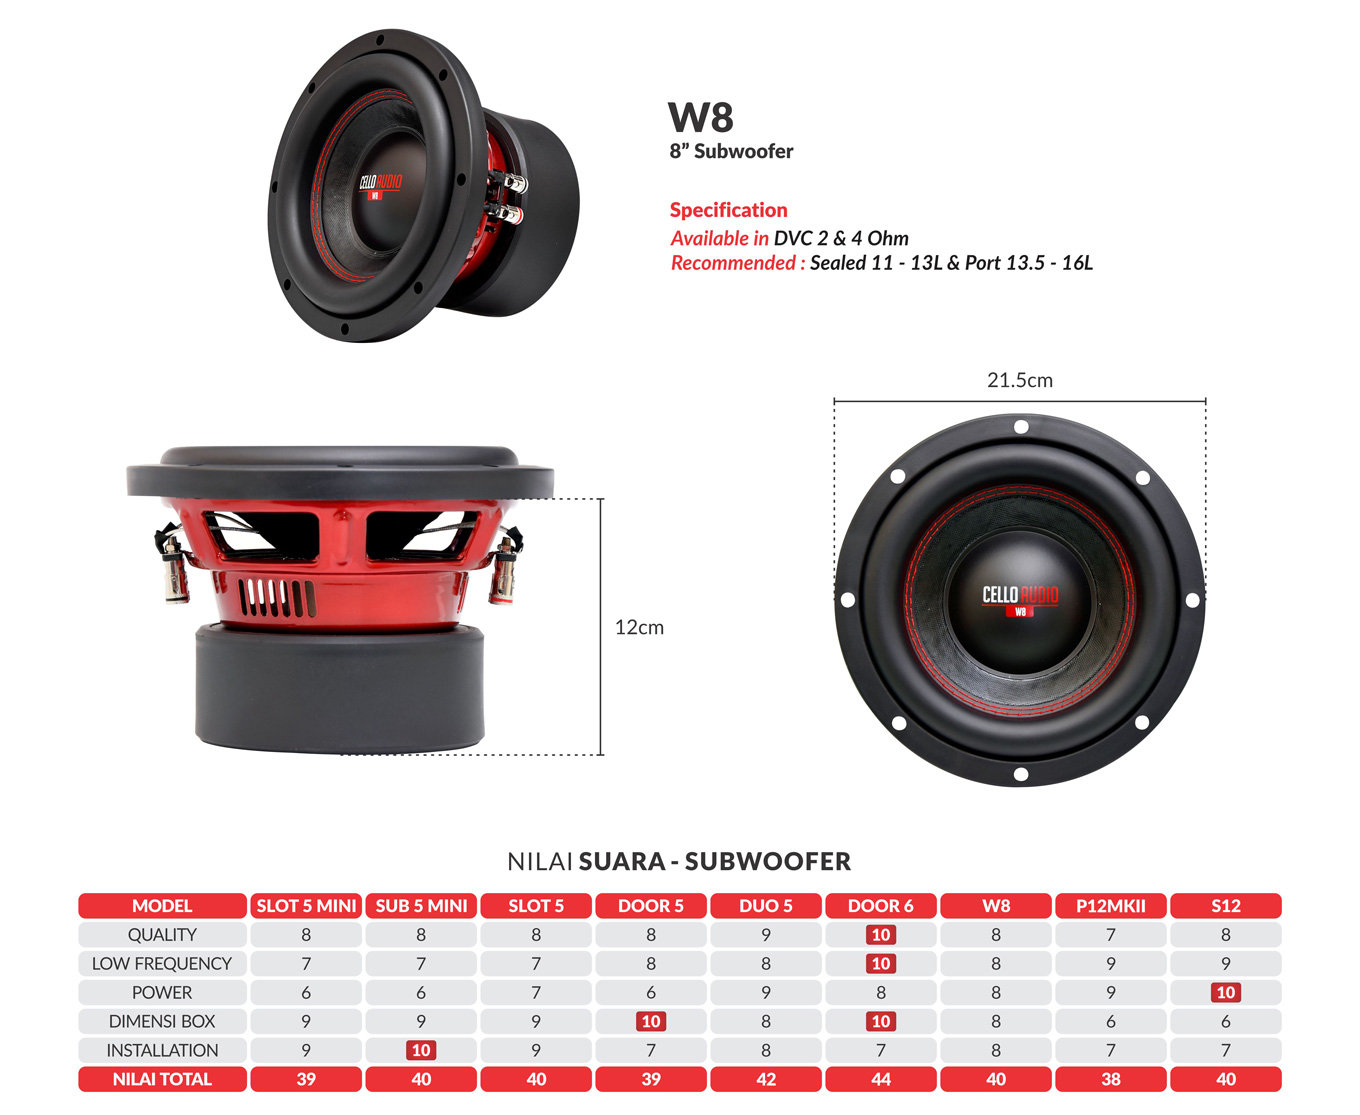 w8-specification